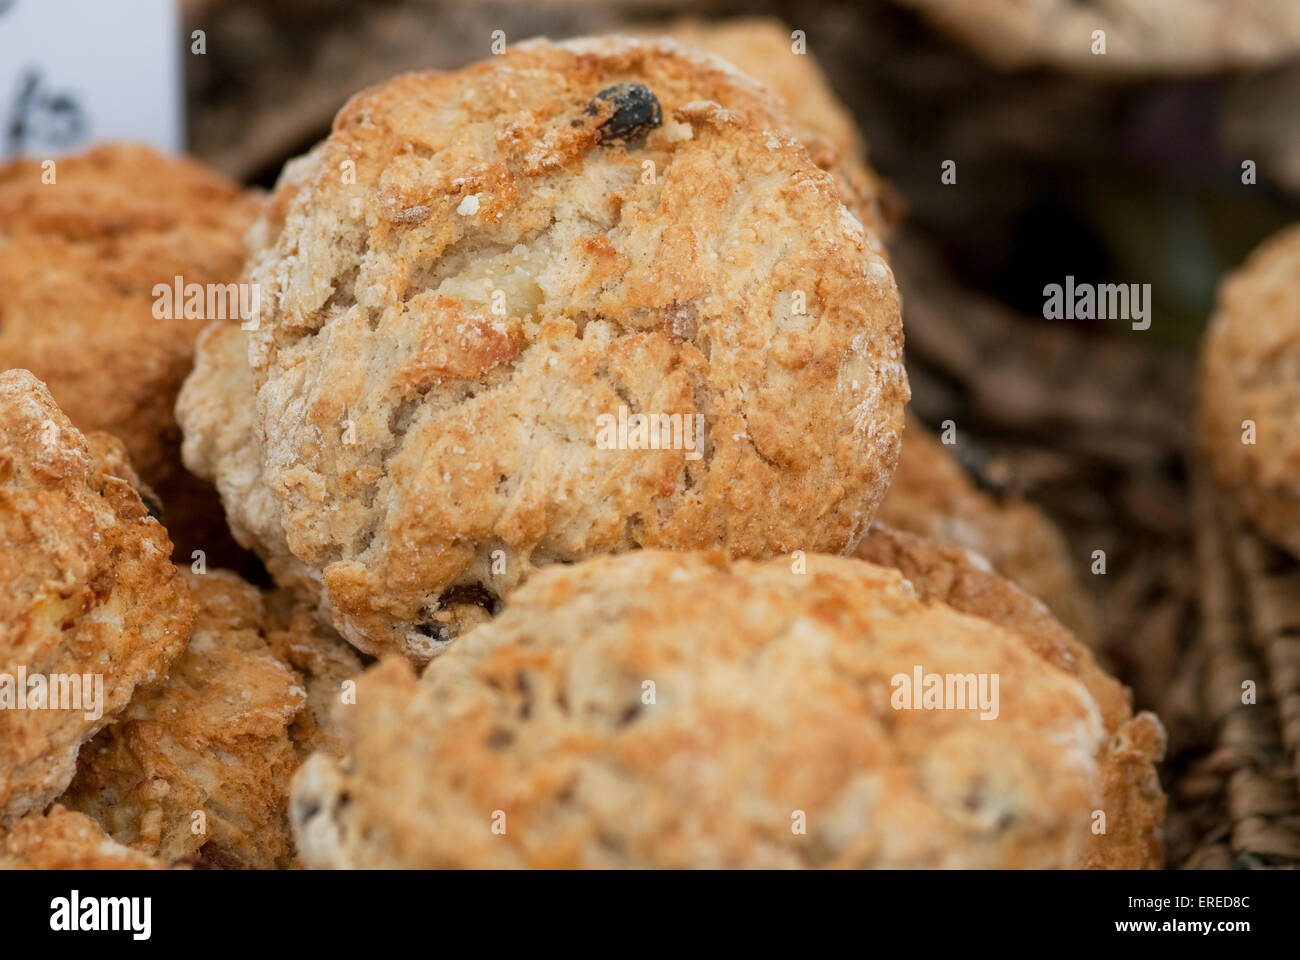 Close up Still life food image of home baked fruit scones in a basket - Stock Image